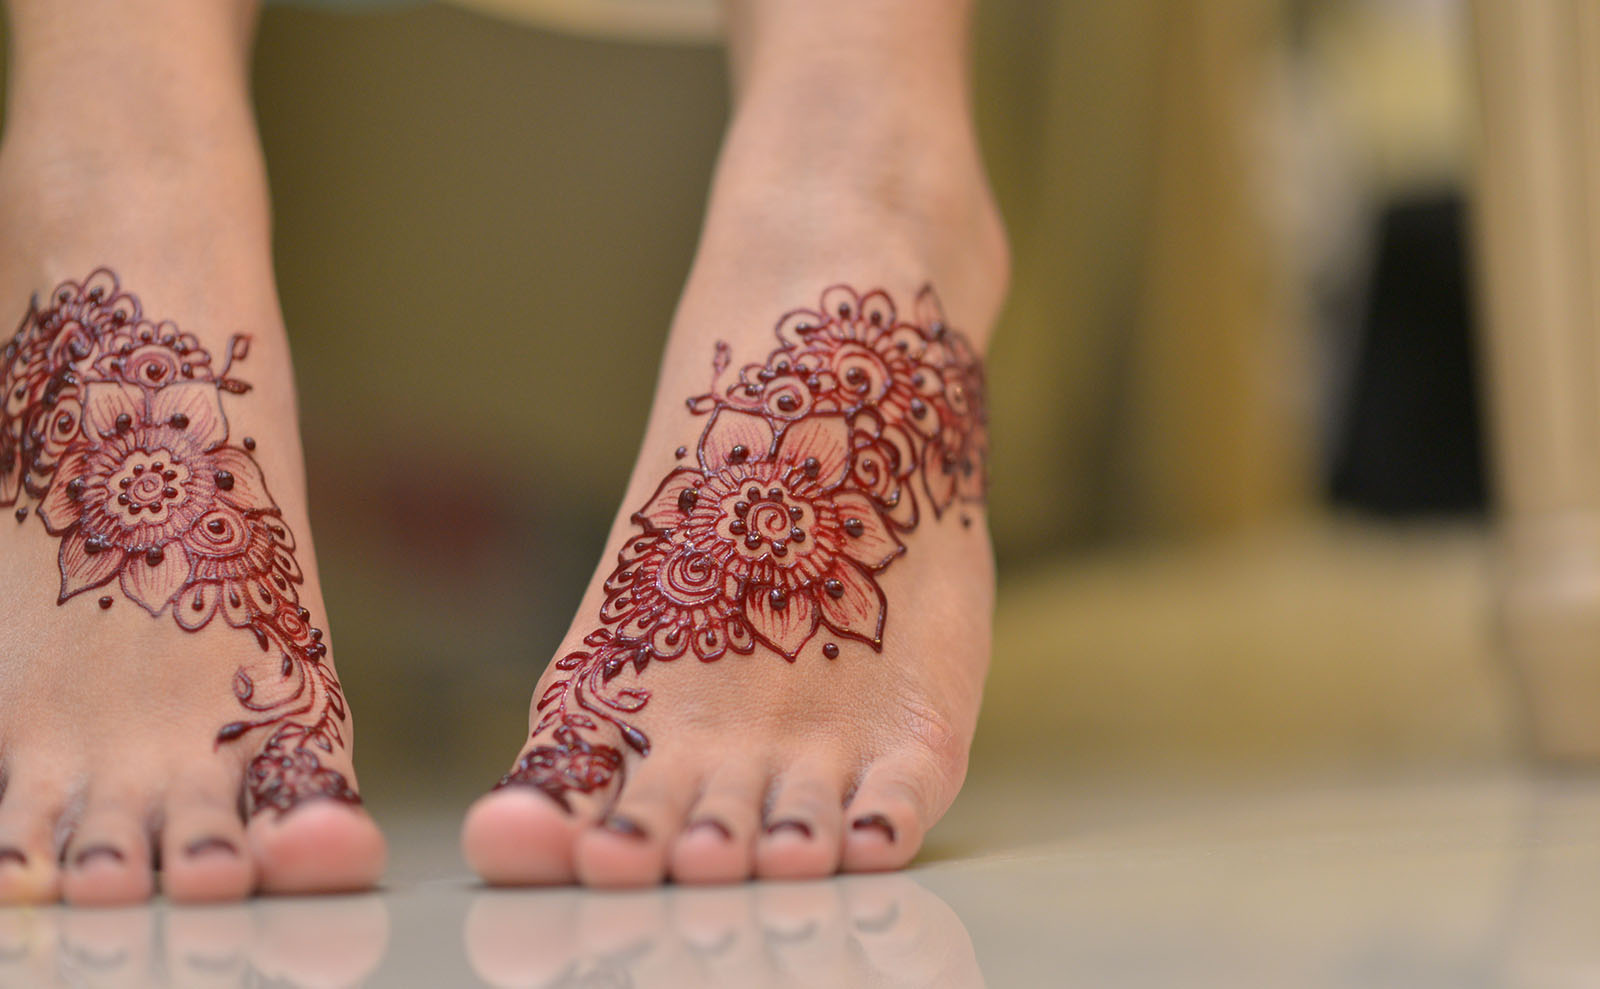 a woman's feet displaying black henna tattoos